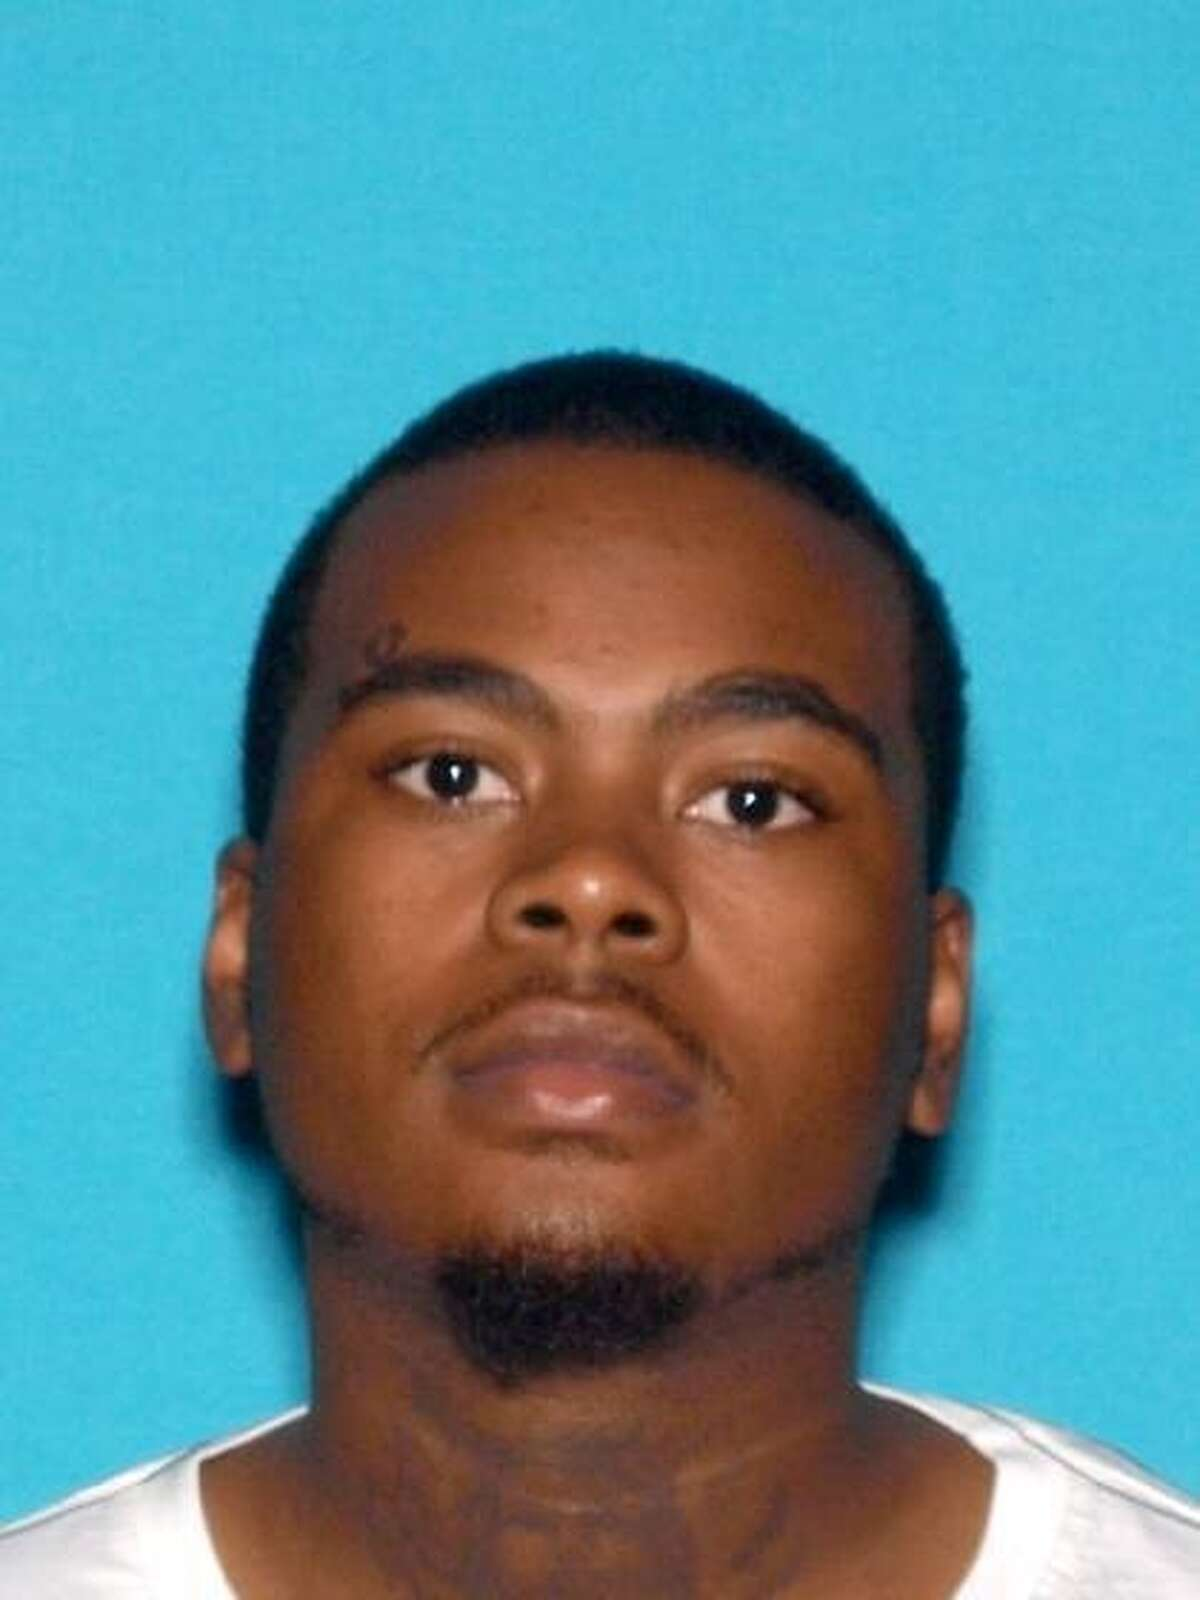 The suspects sought in the Amber Alert for 2-year-old Jalanie Fortson are Javonn Fortson (pictured), Lipine Faafui, and an unknown third female suspect.